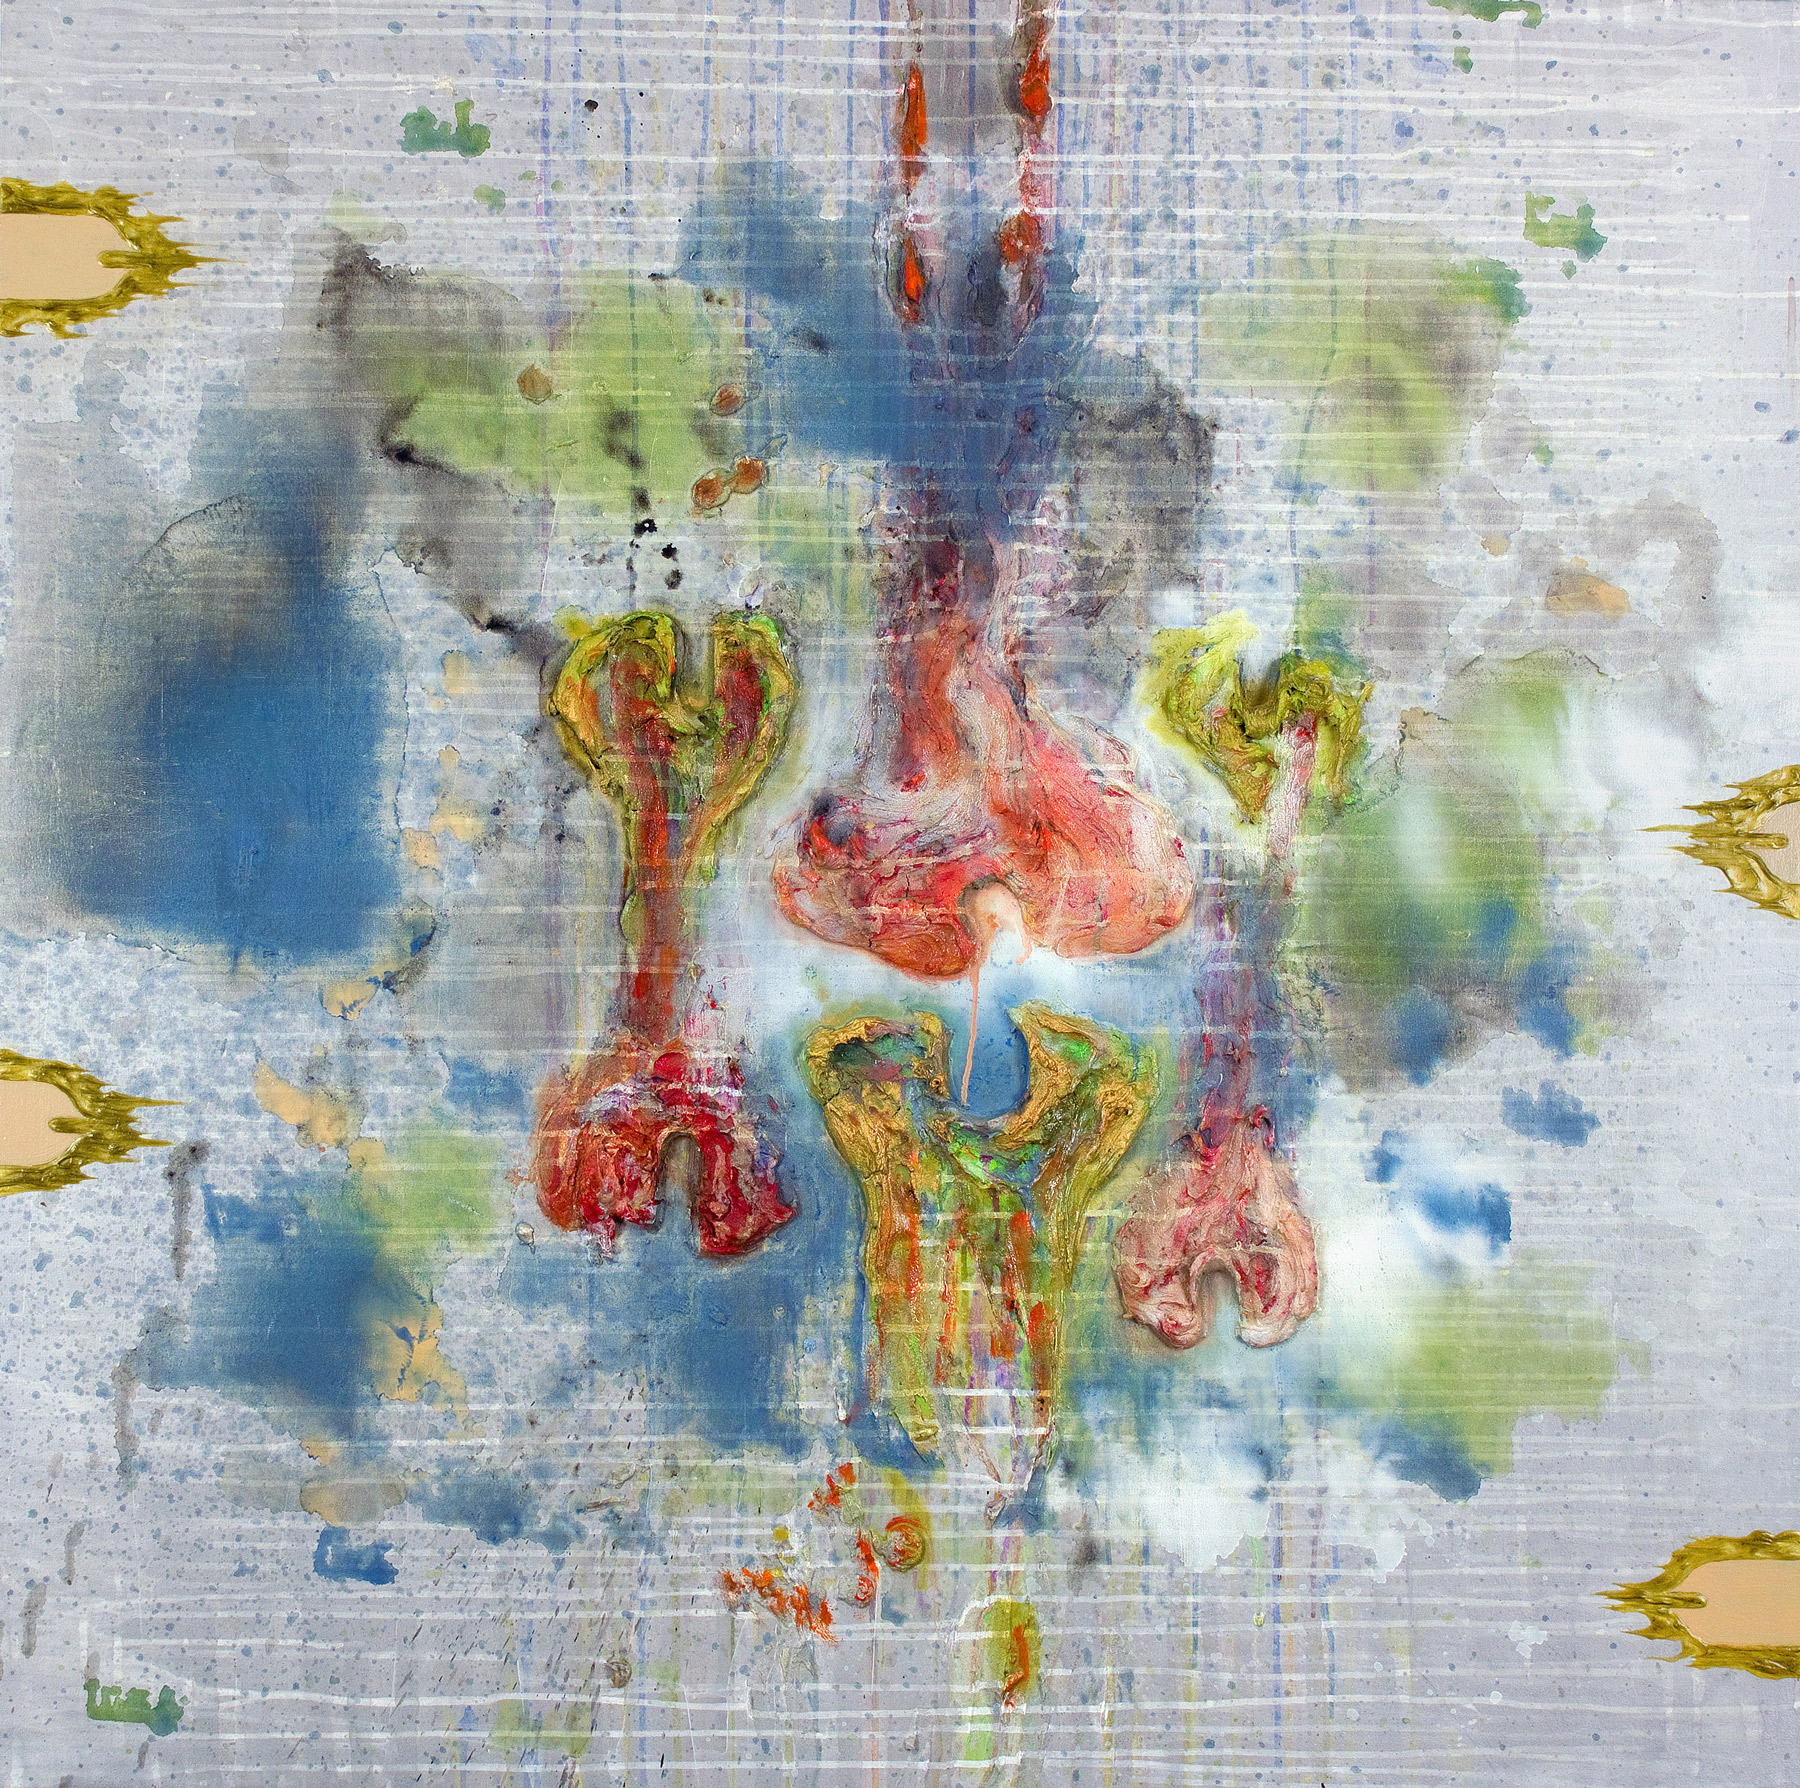 24 March , oil, acrylic, metallic paint and sand on canvas, 48 in x 48 in, 2010.